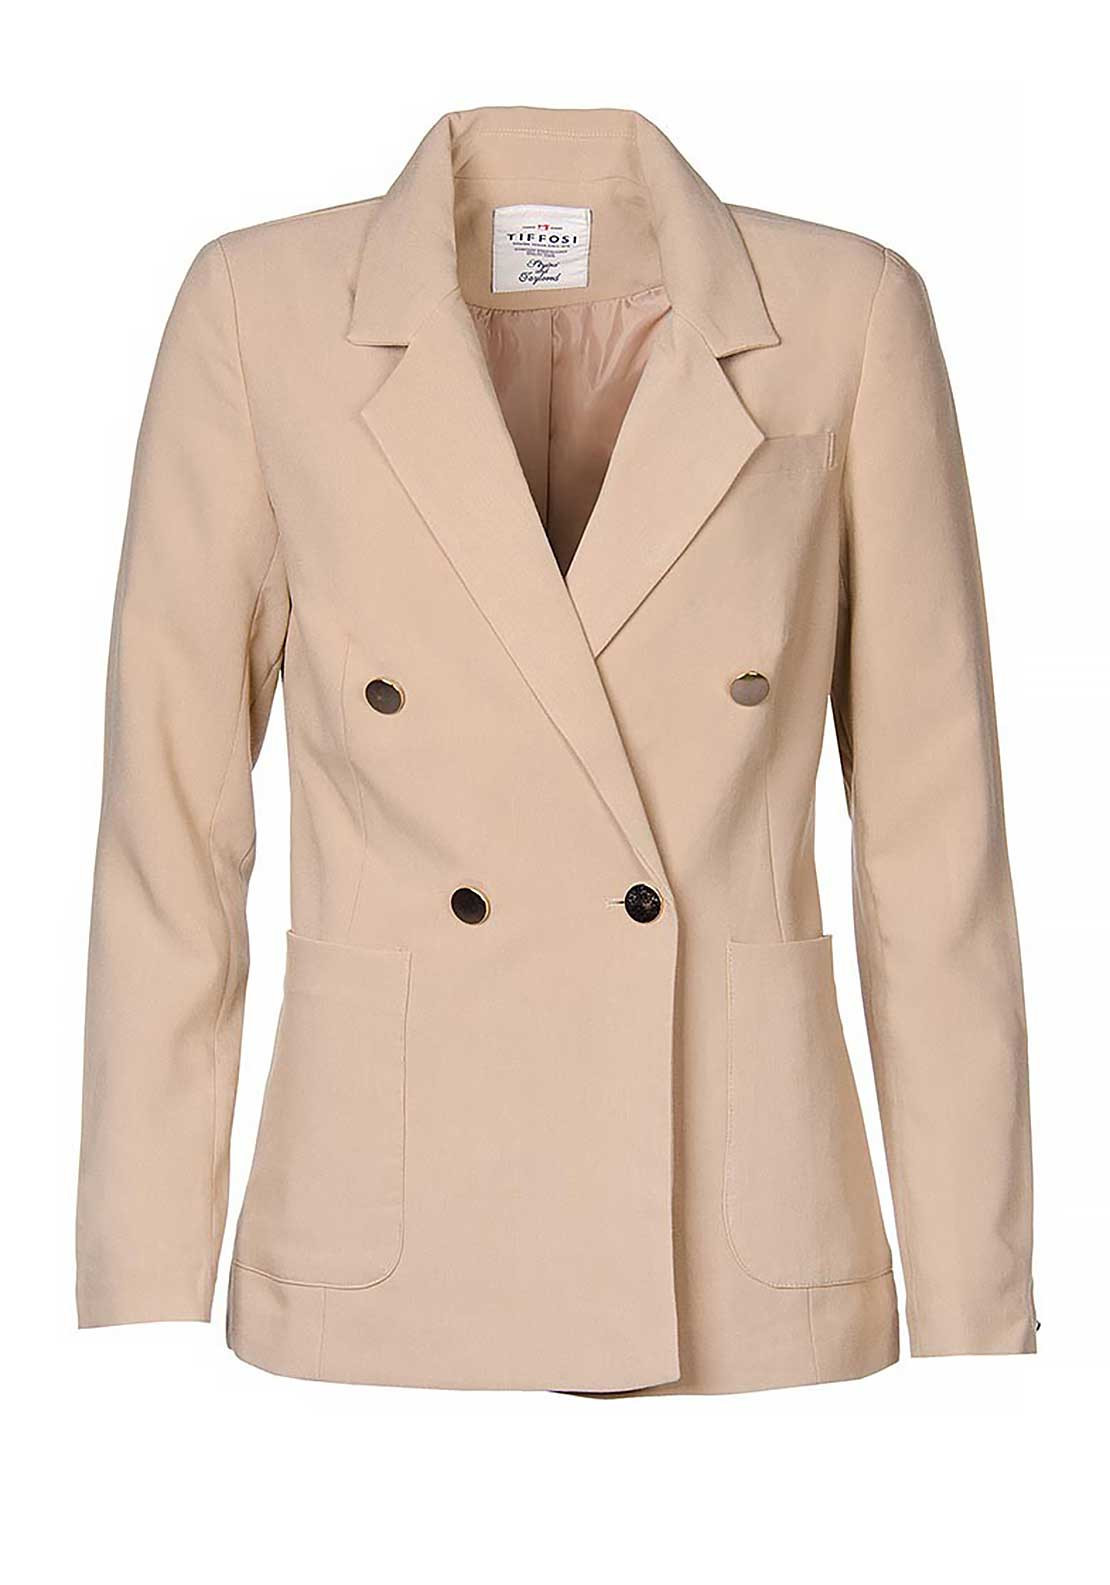 Tiffosi Celia Double Breasted Blazer Jacket, Tan